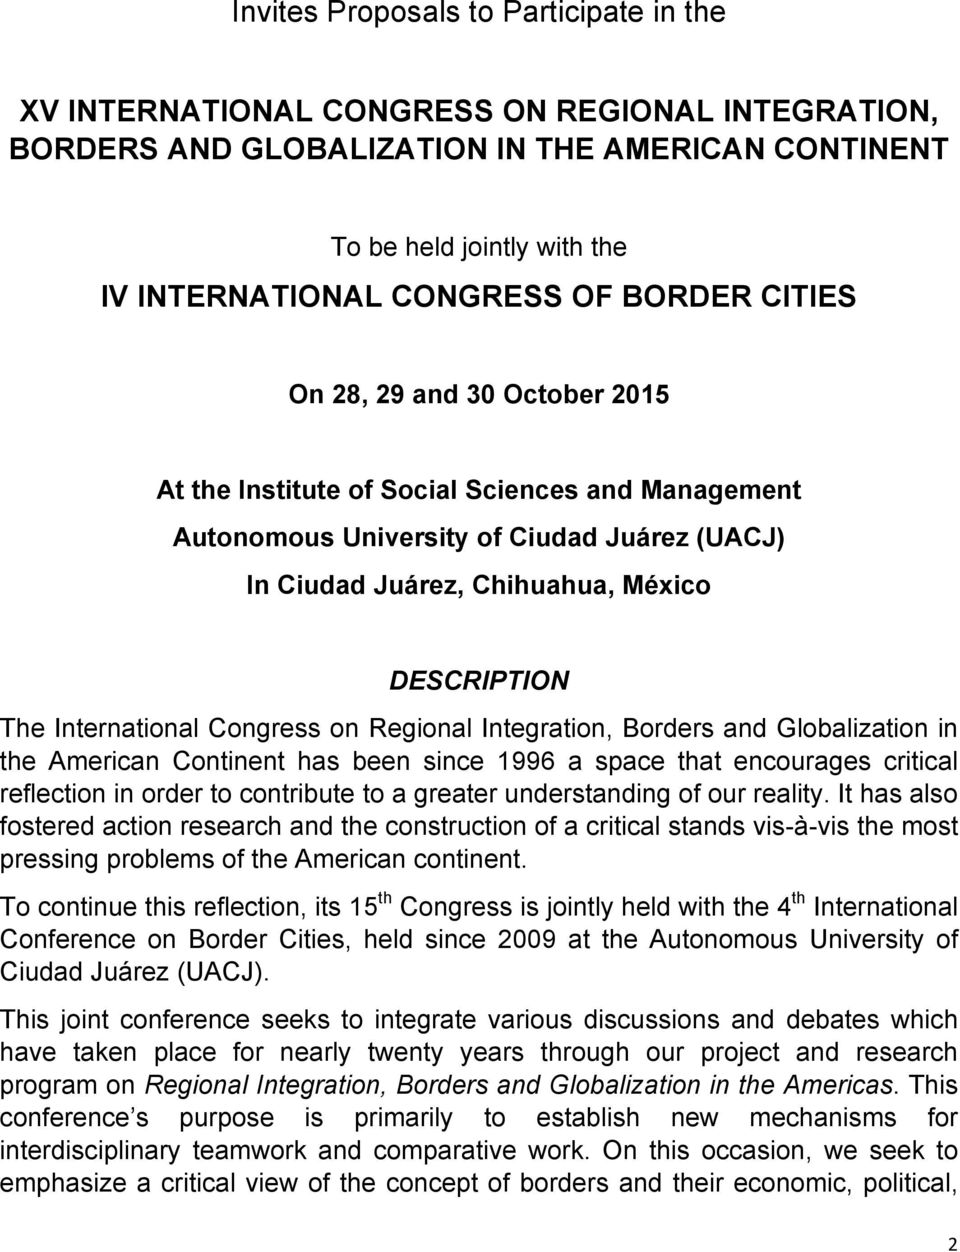 International Congress on Regional Integration, Borders and Globalization in the American Continent has been since 1996 a space that encourages critical reflection in order to contribute to a greater